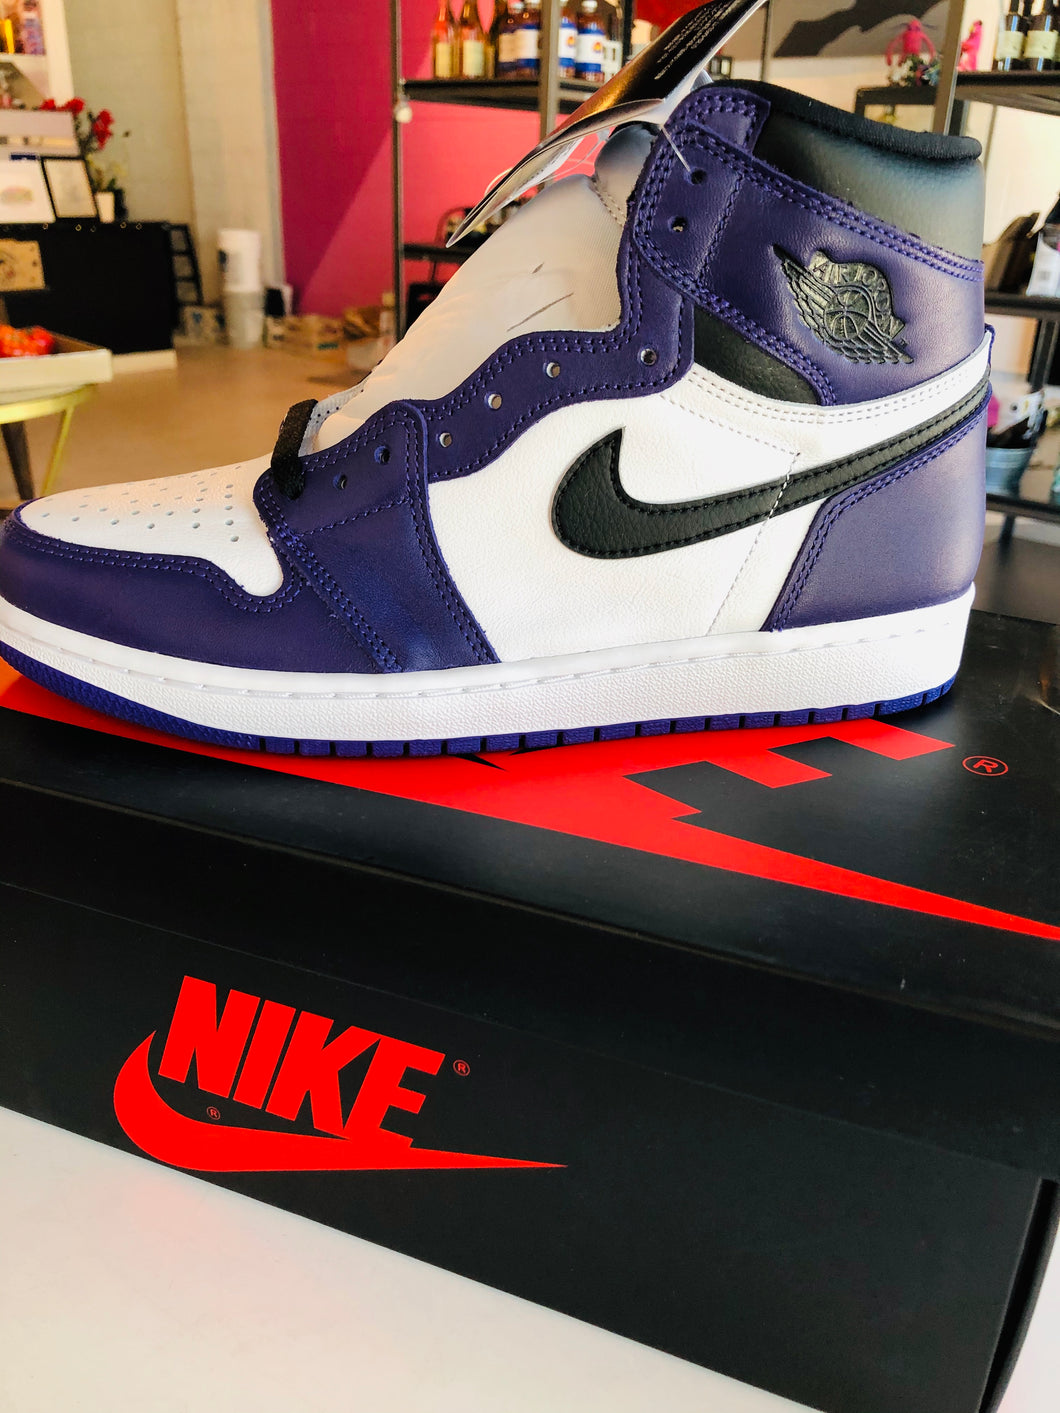 Air Jordan 1 Retro High OG  'Court Purple 2.0'